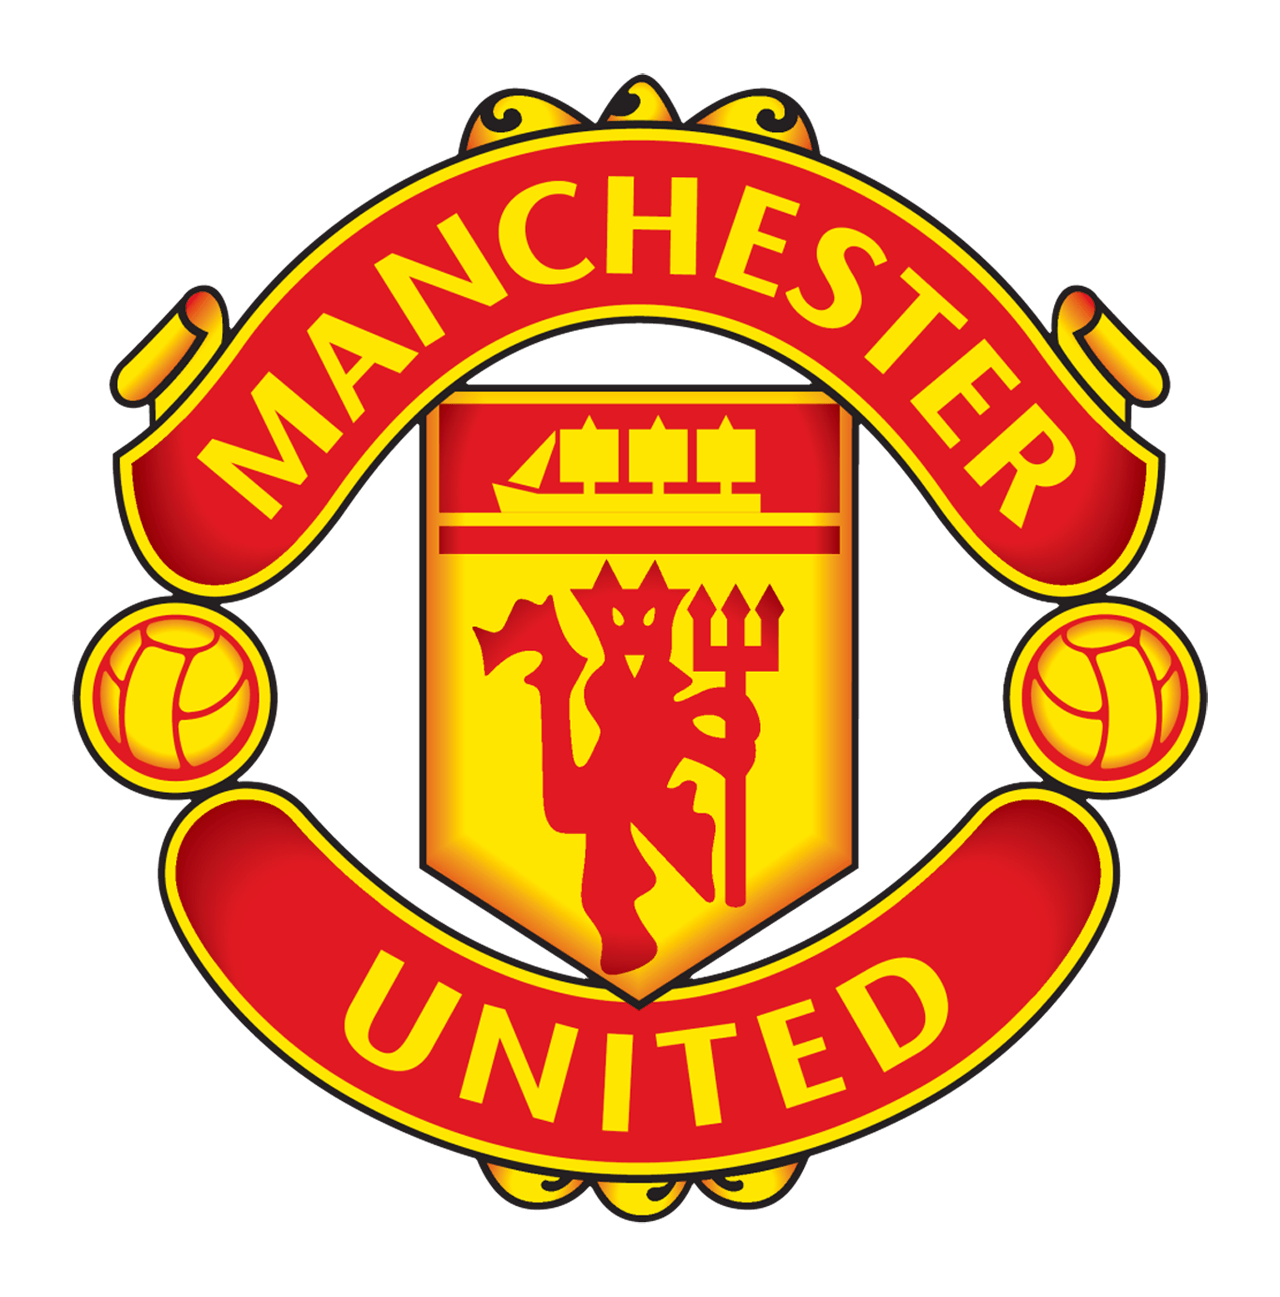 Manchester United man united - Transfer: Manchester United sack player